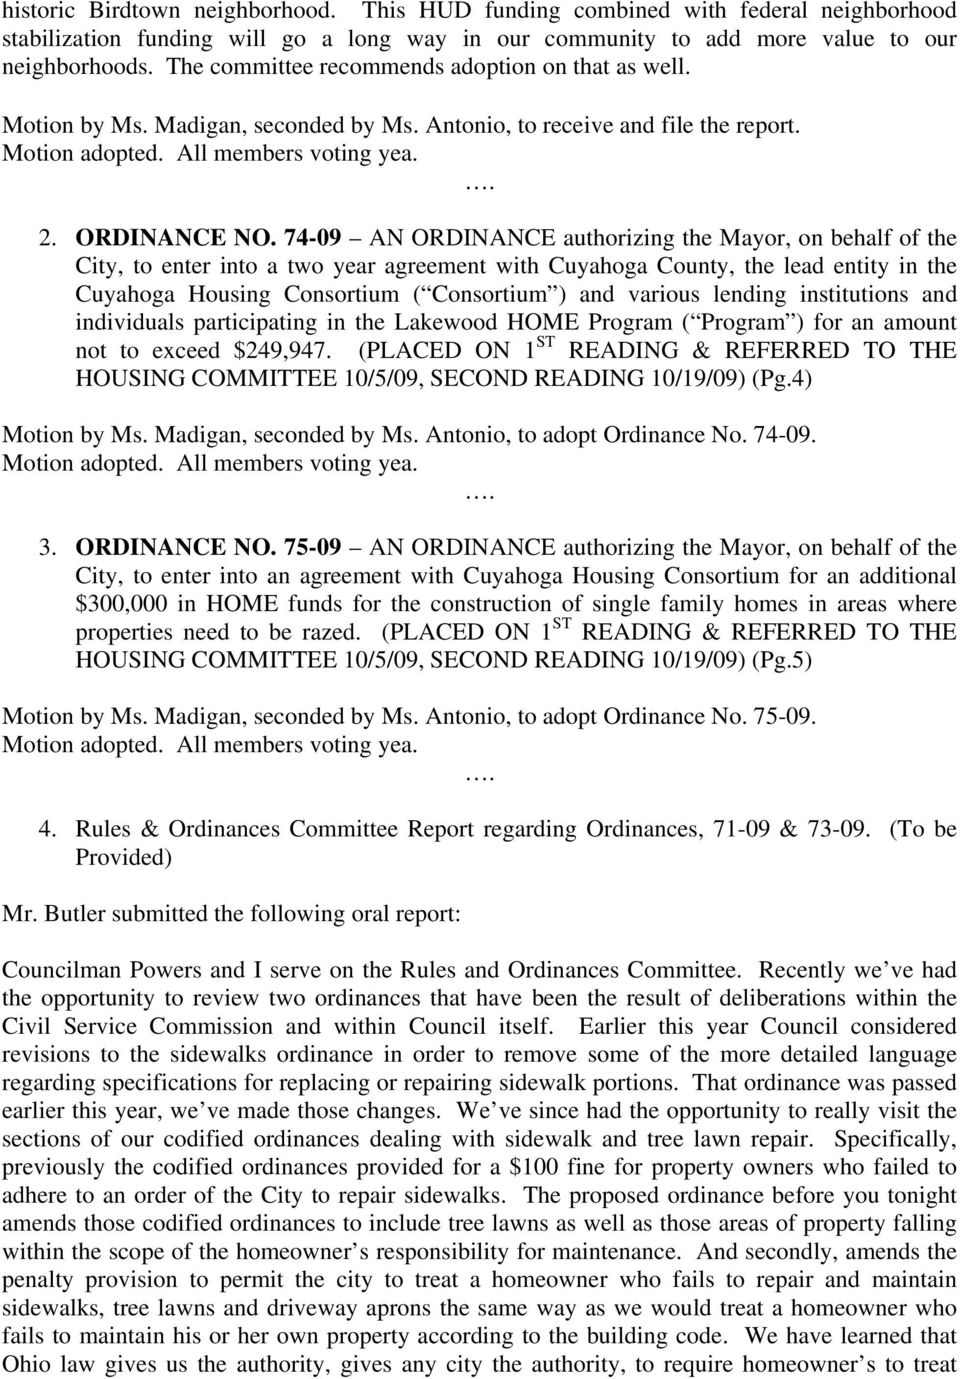 74-09 AN ORDINANCE authorizing the Mayor, on behalf of the City, to enter into a two year agreement with Cuyahoga County, the lead entity in the Cuyahoga Housing Consortium ( Consortium ) and various